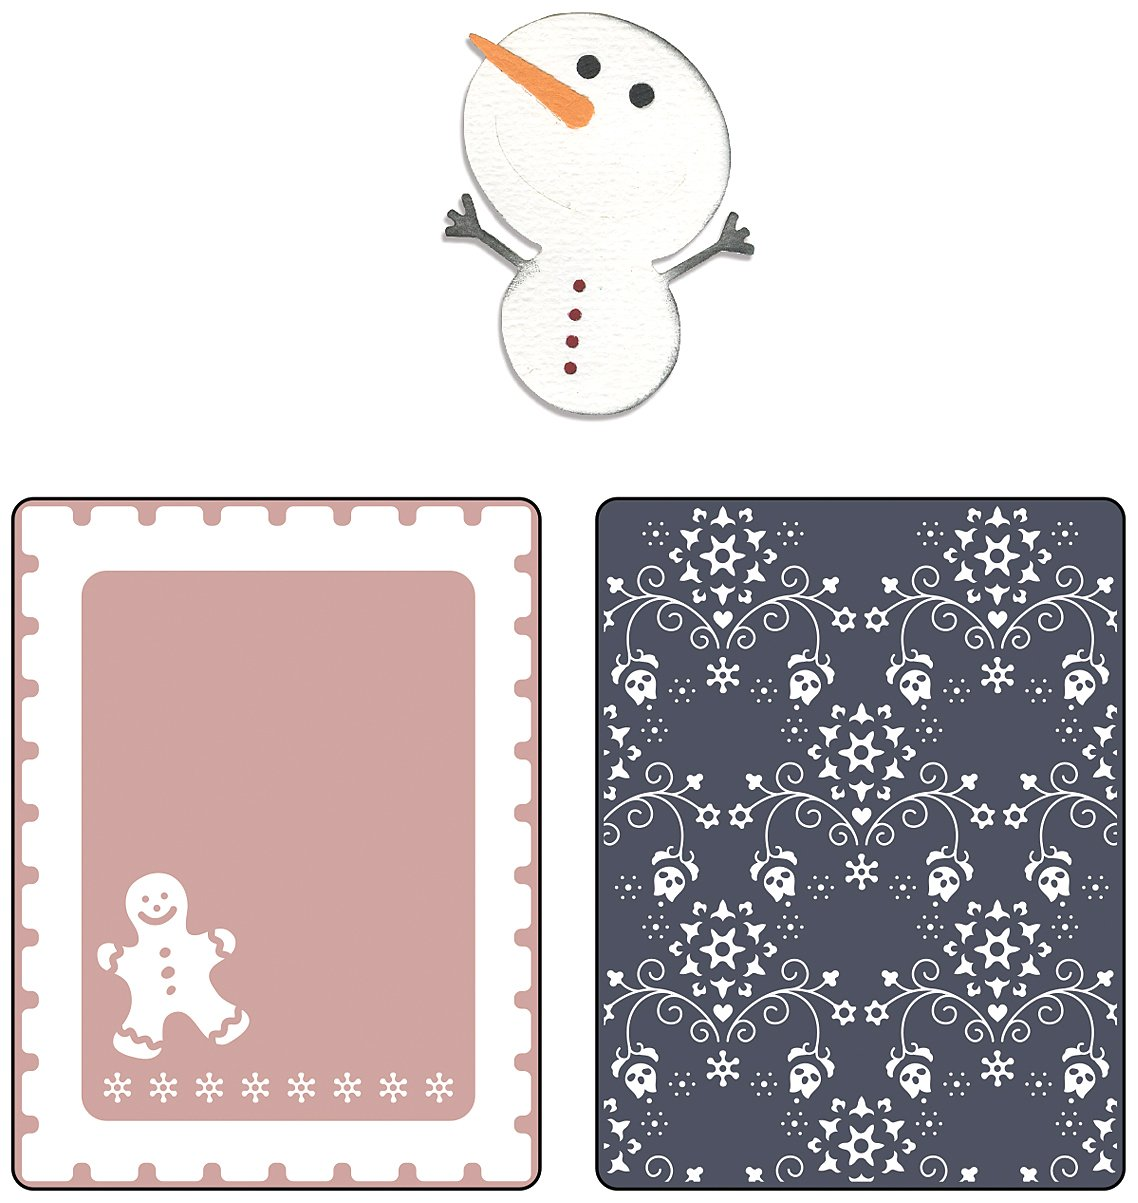 Sizzix Textured Impressions Embossing Folders with Bonus Sizzlits Die - Snowmen Set by BasicGrey Ellison 658198